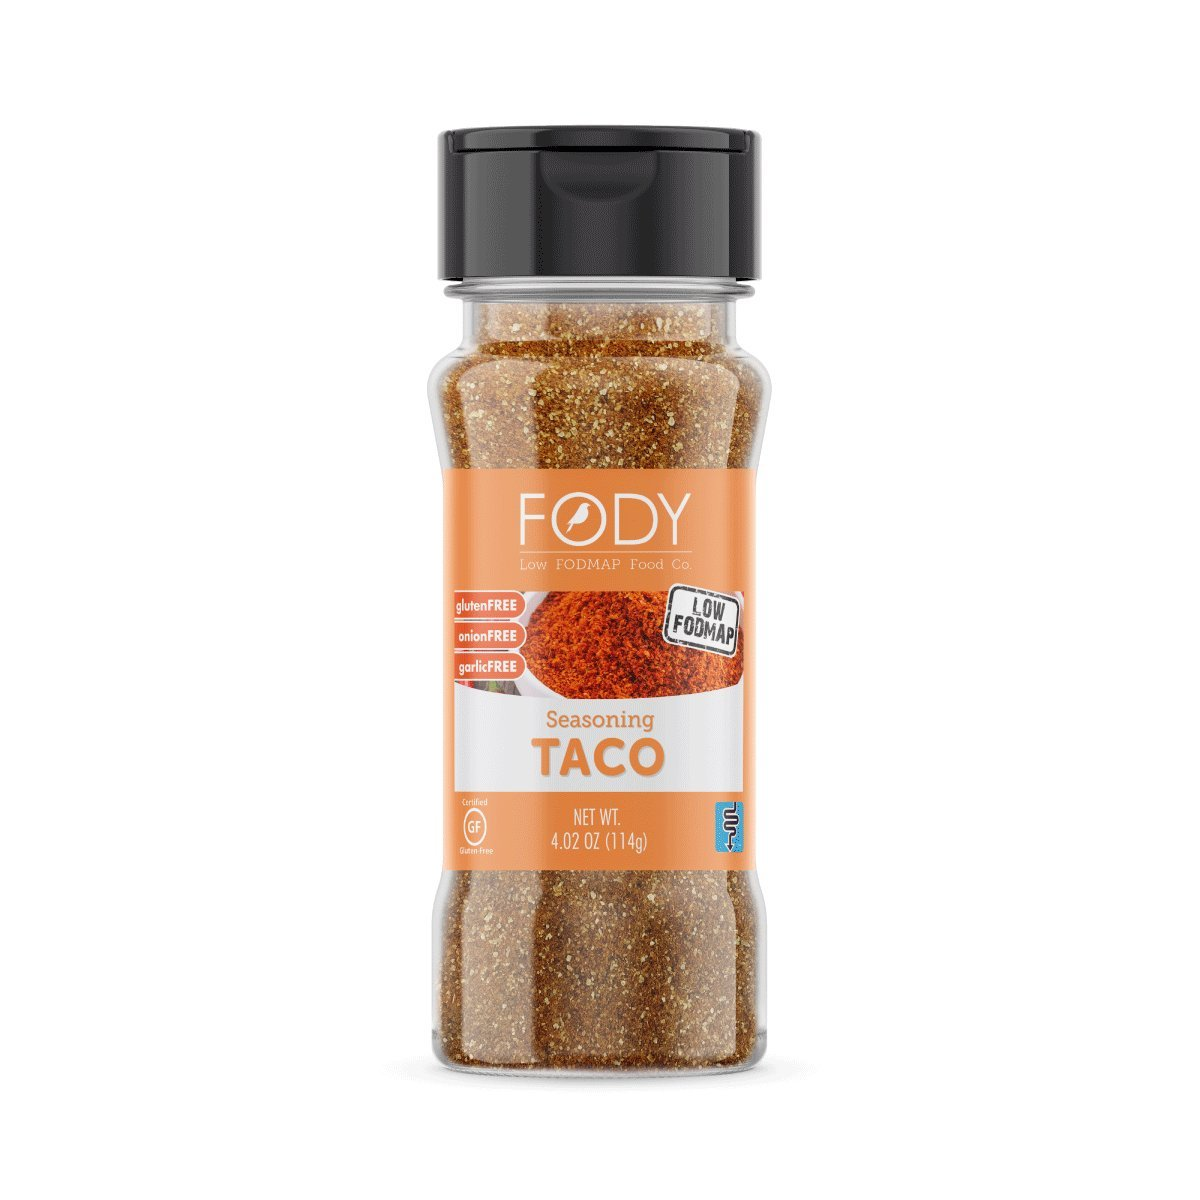 Fody Food Co, Taco Seasoning, Low FODMAP and Gut Friendly, Gluten and Lactose Free, Garlic and Onion Free